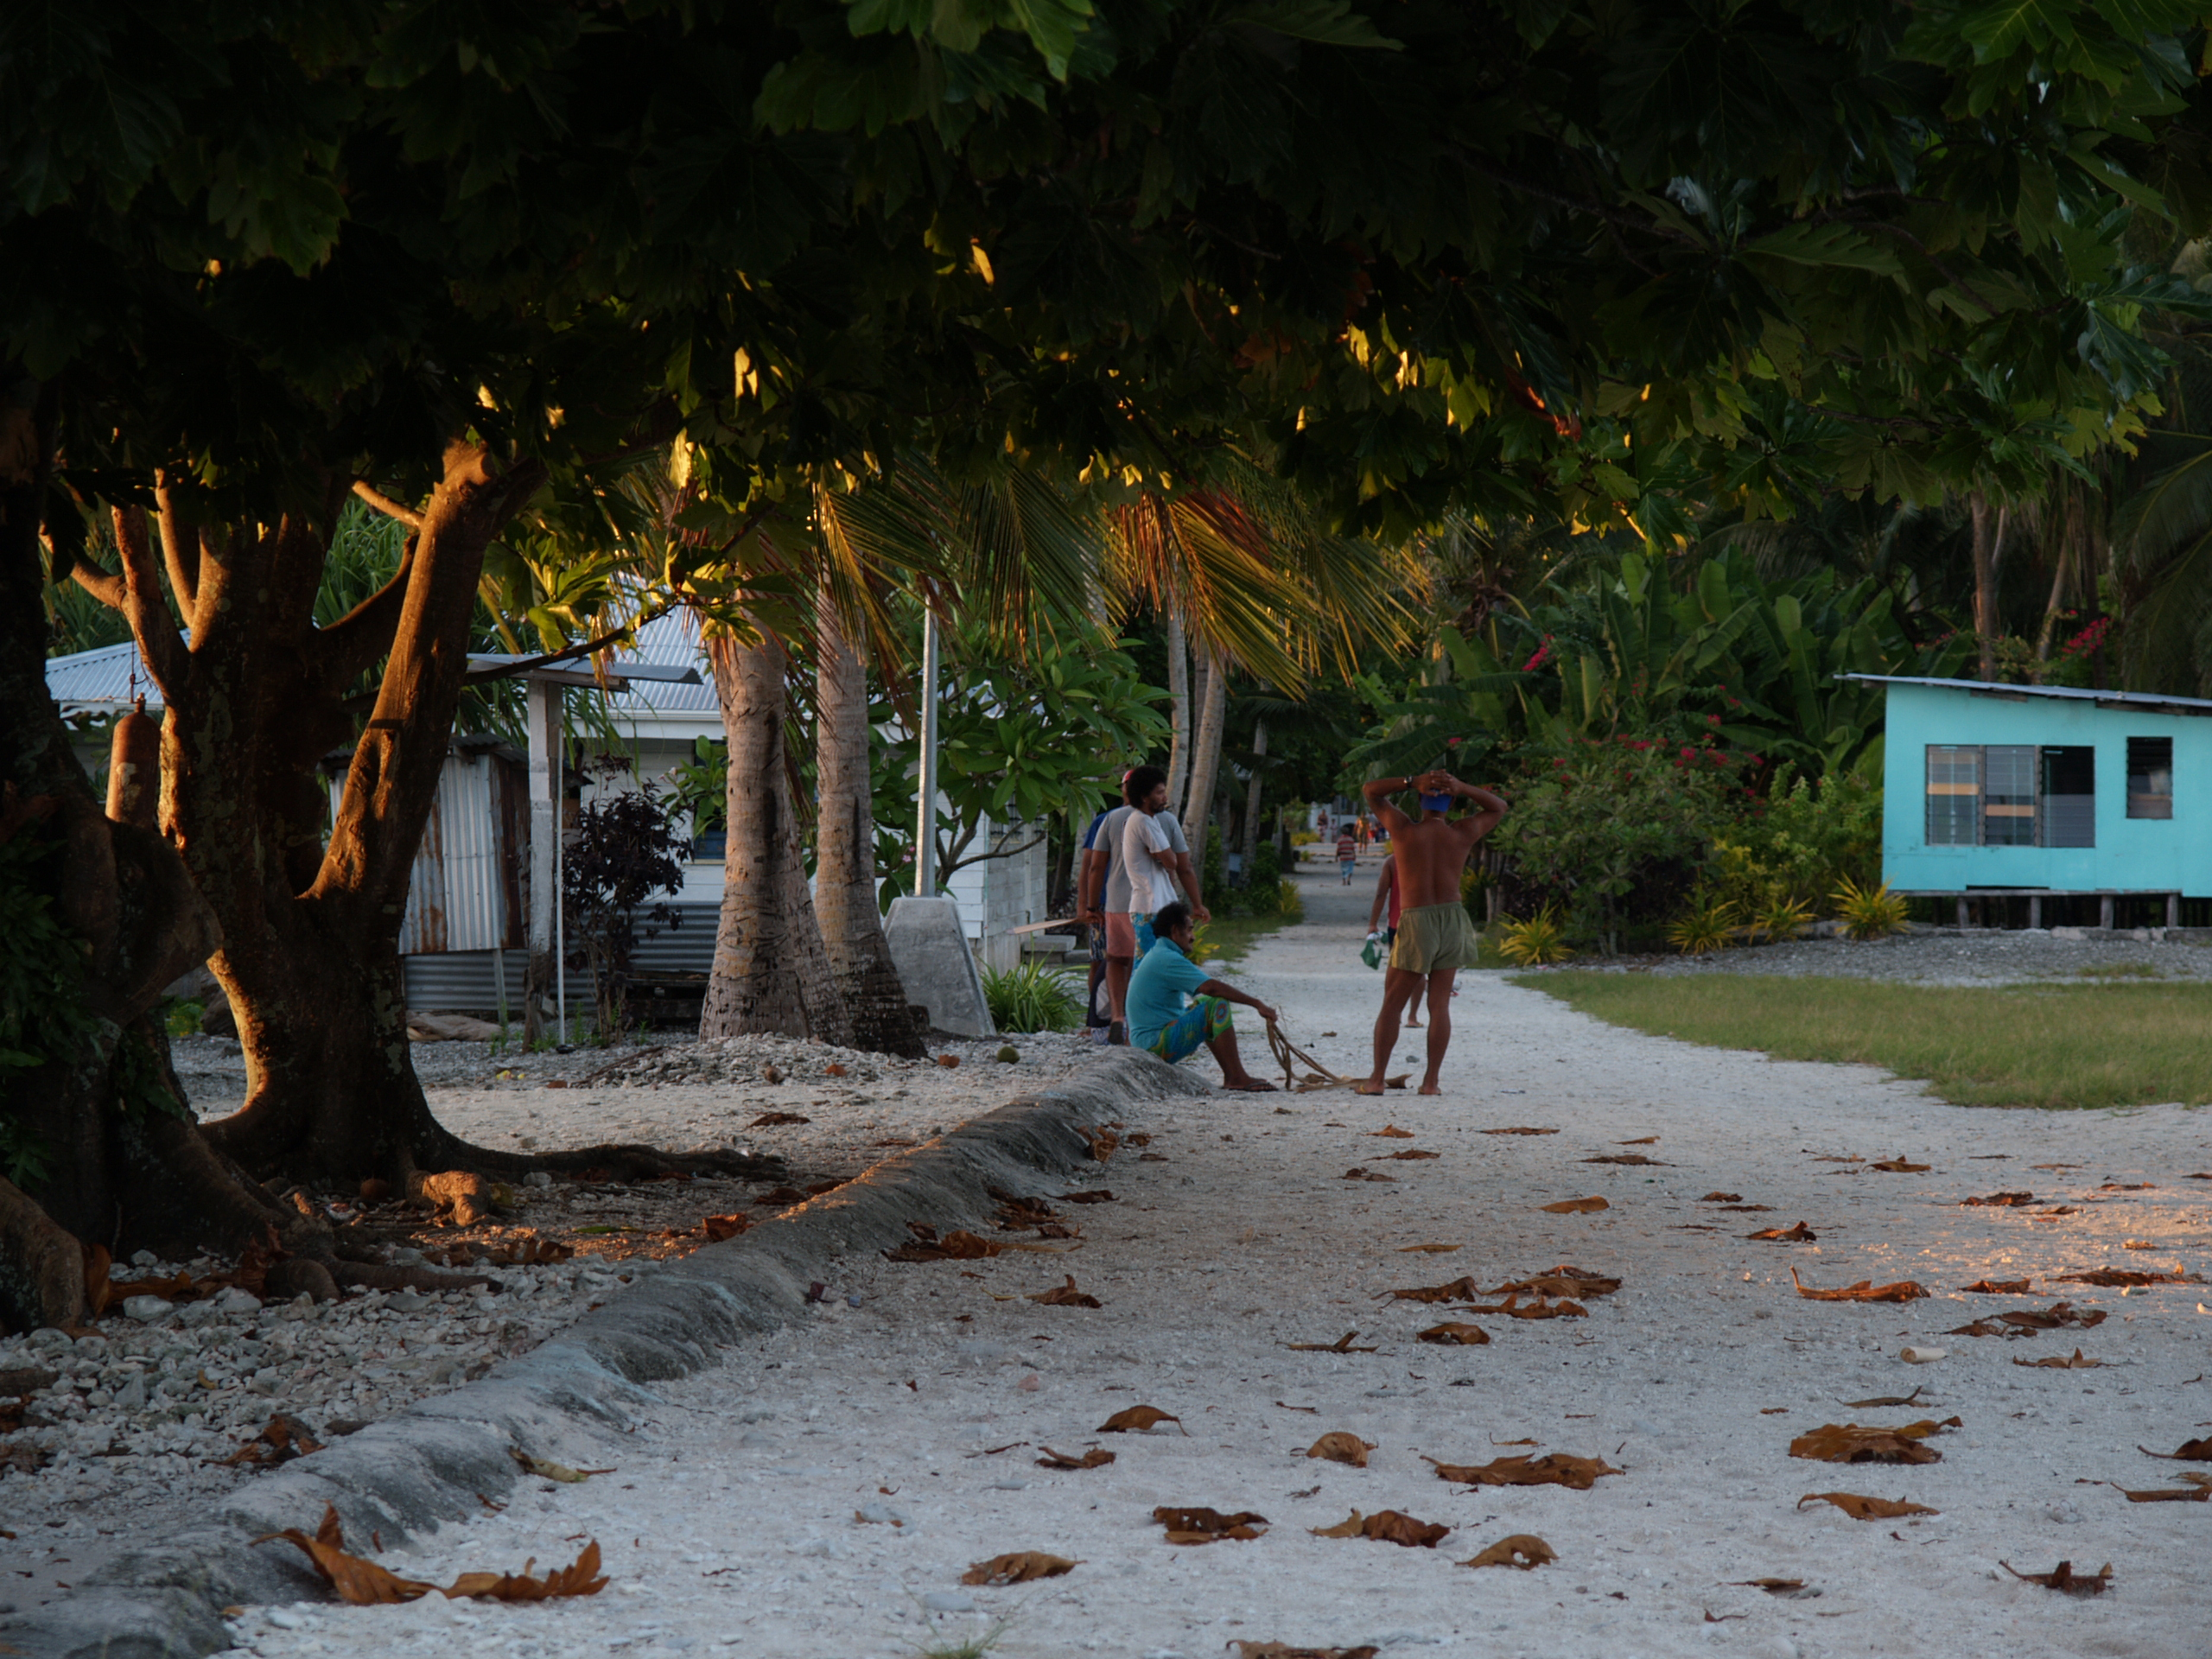 The main street of Atafu village, Tokelau, at dawn Photo by CloudSurfer/Wikimedia http://creativecommons.org/licenses/by-nc-nd/2.0/